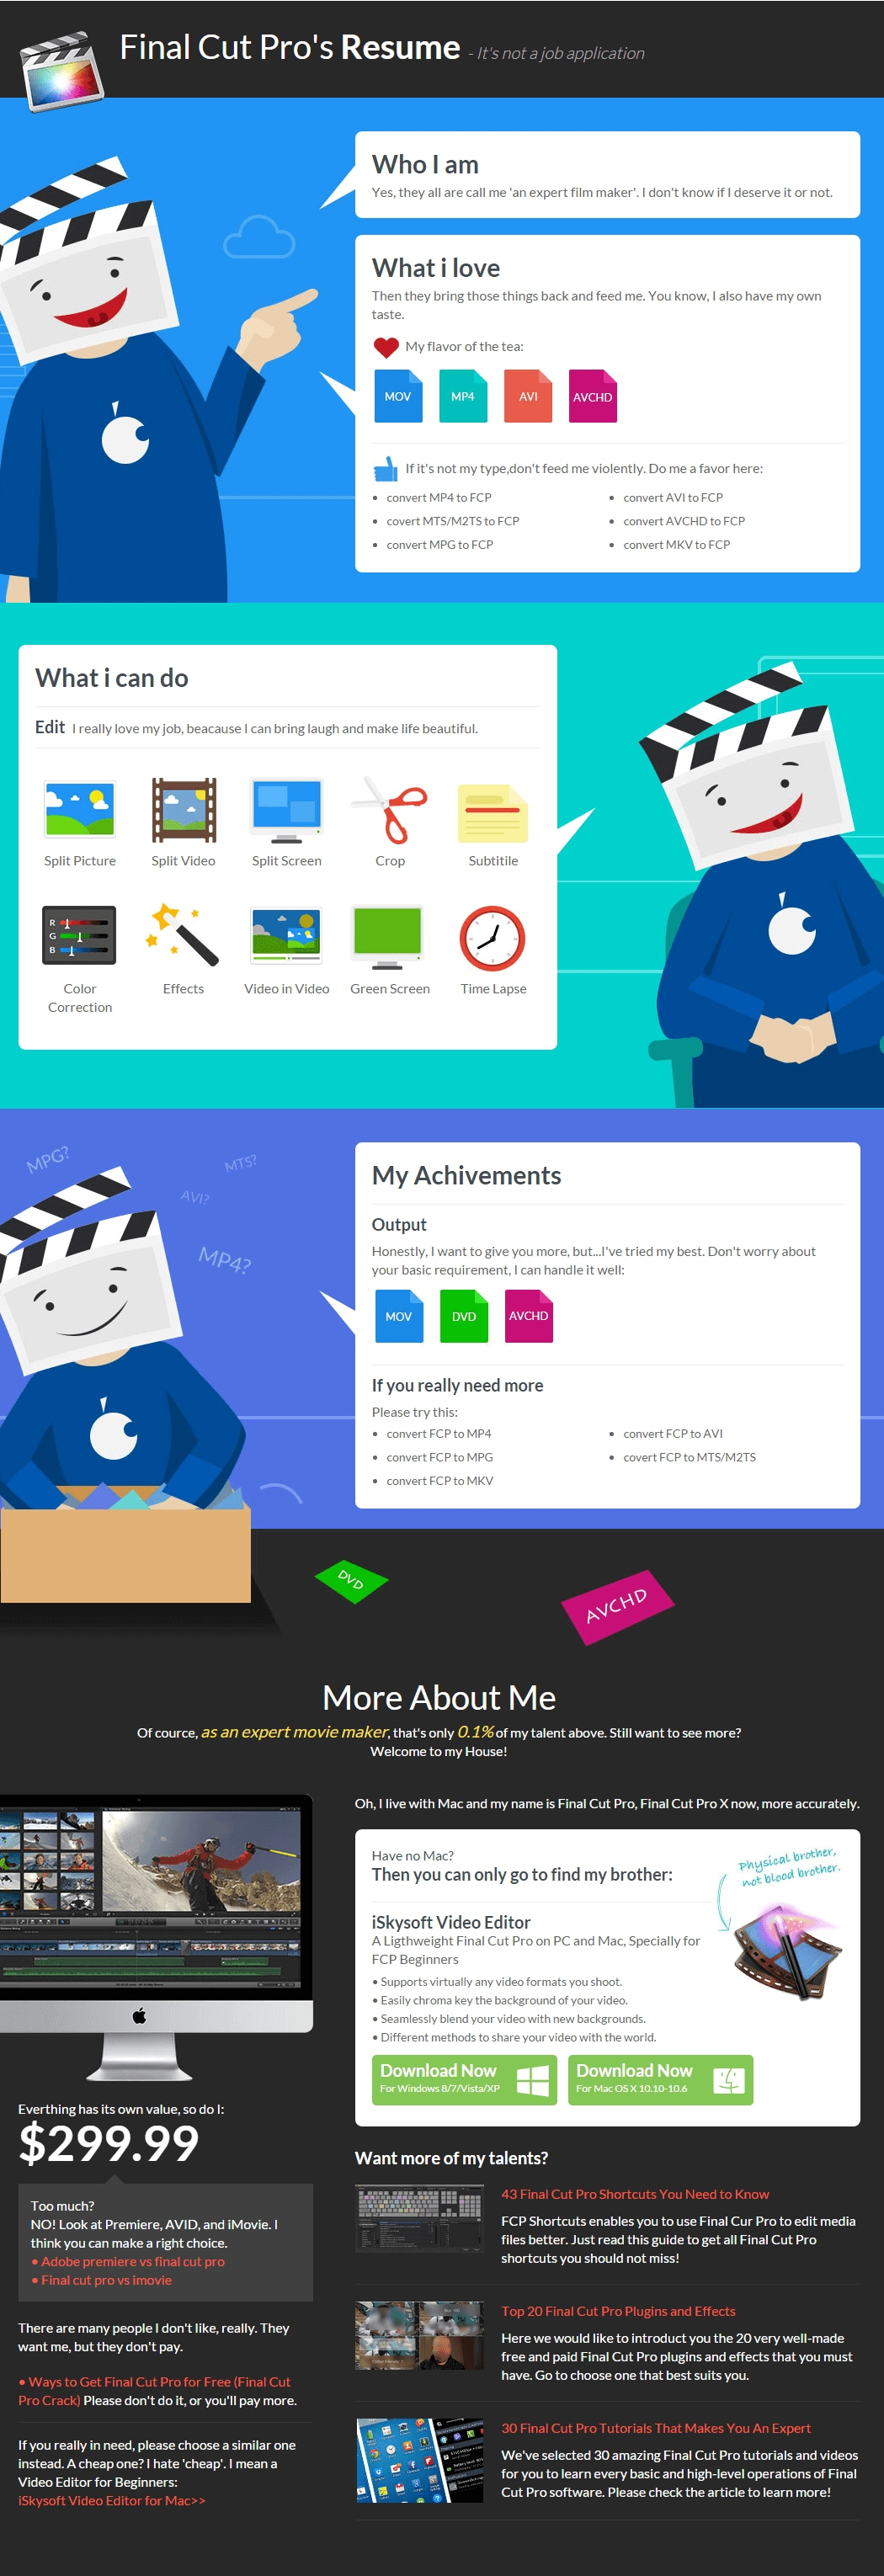 Infographic] Final Cut Pro's Resume - It's not a job application